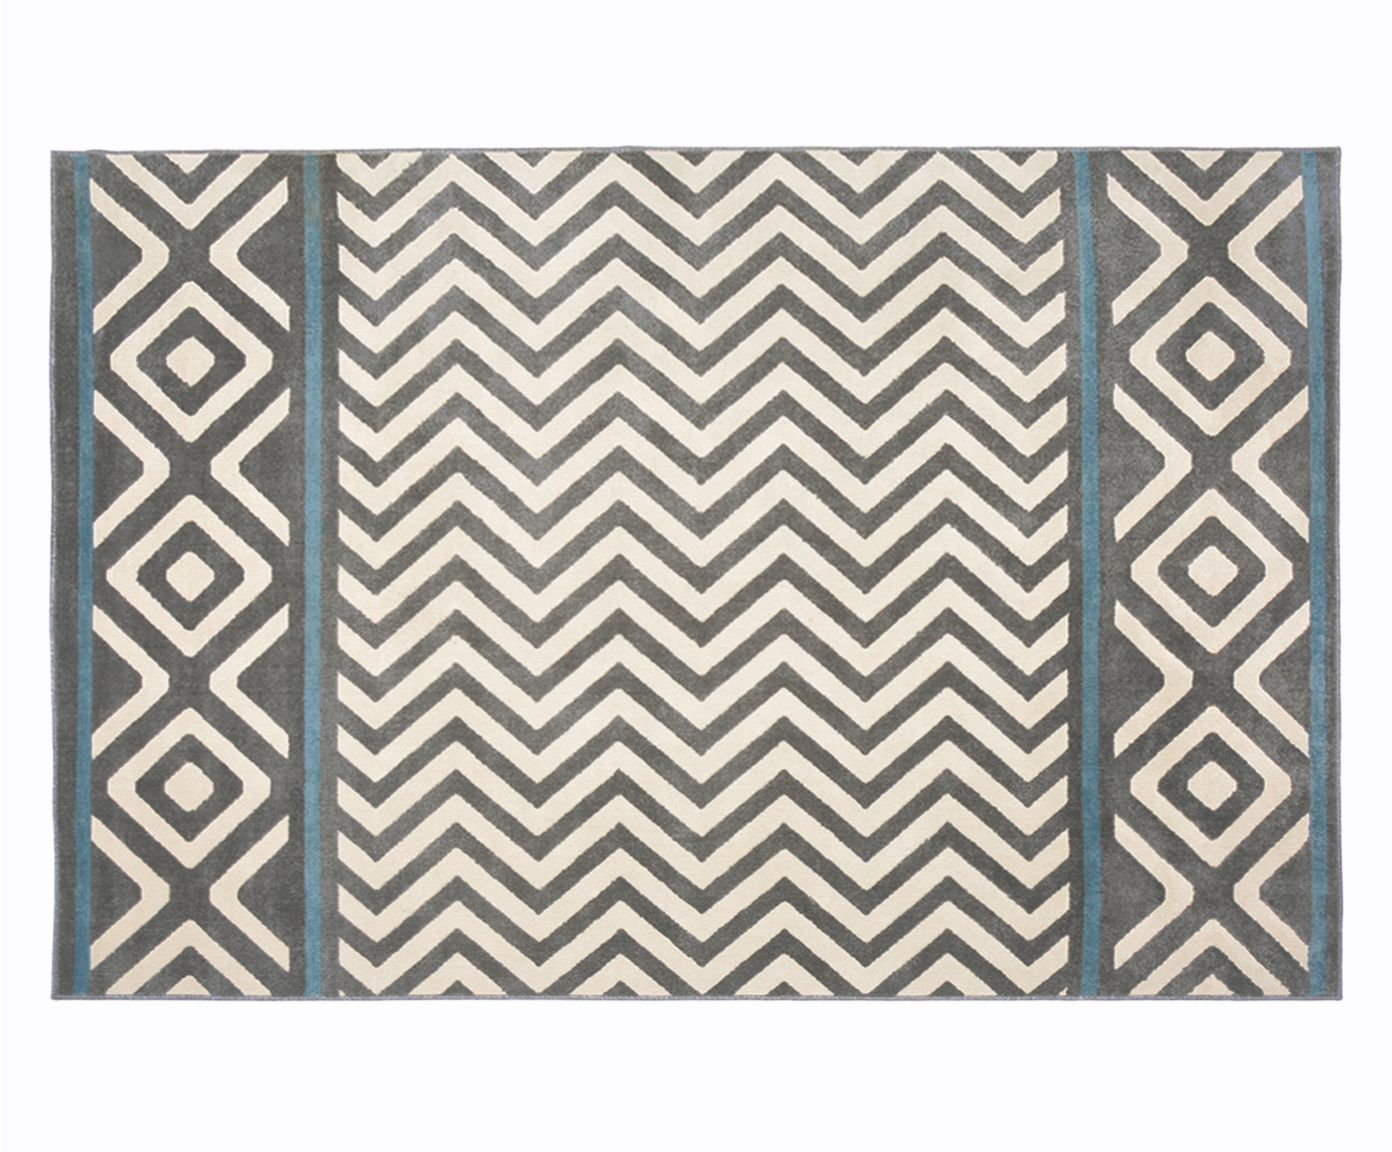 Tapete Trendy Ethnic Carbon - 150X200cm | Westwing.com.br